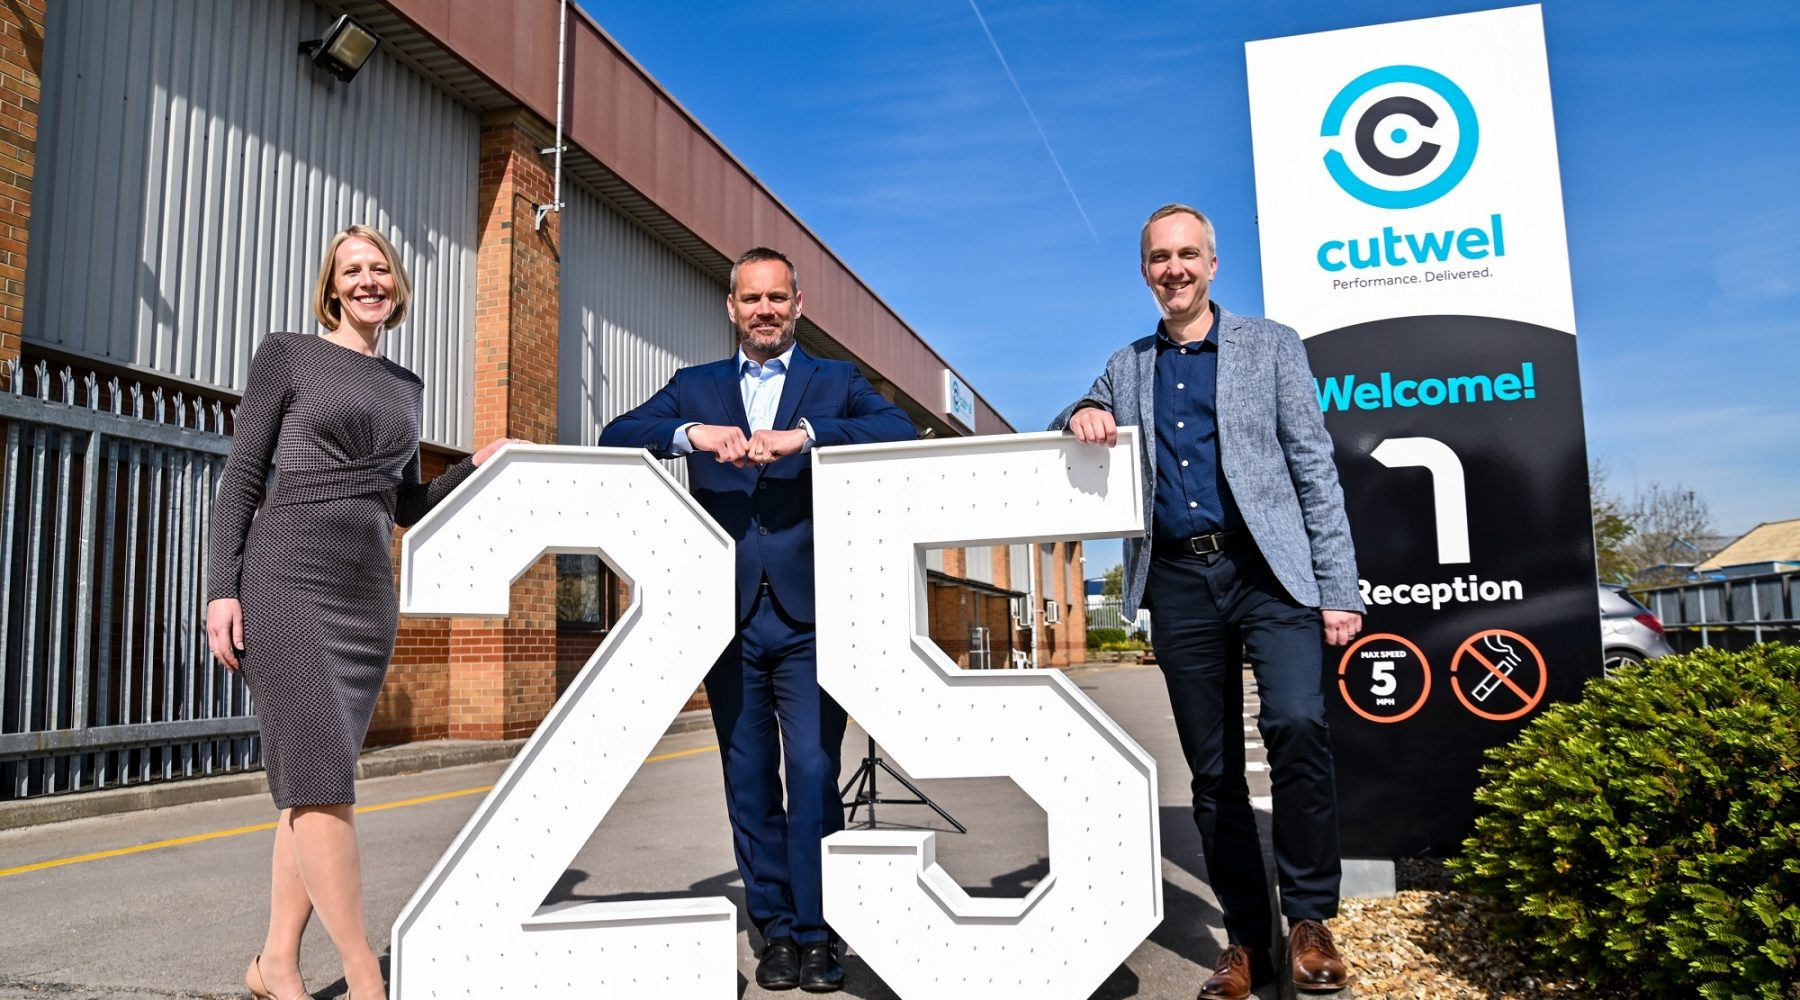 Tooling supply firm marks 25 years with rebrand